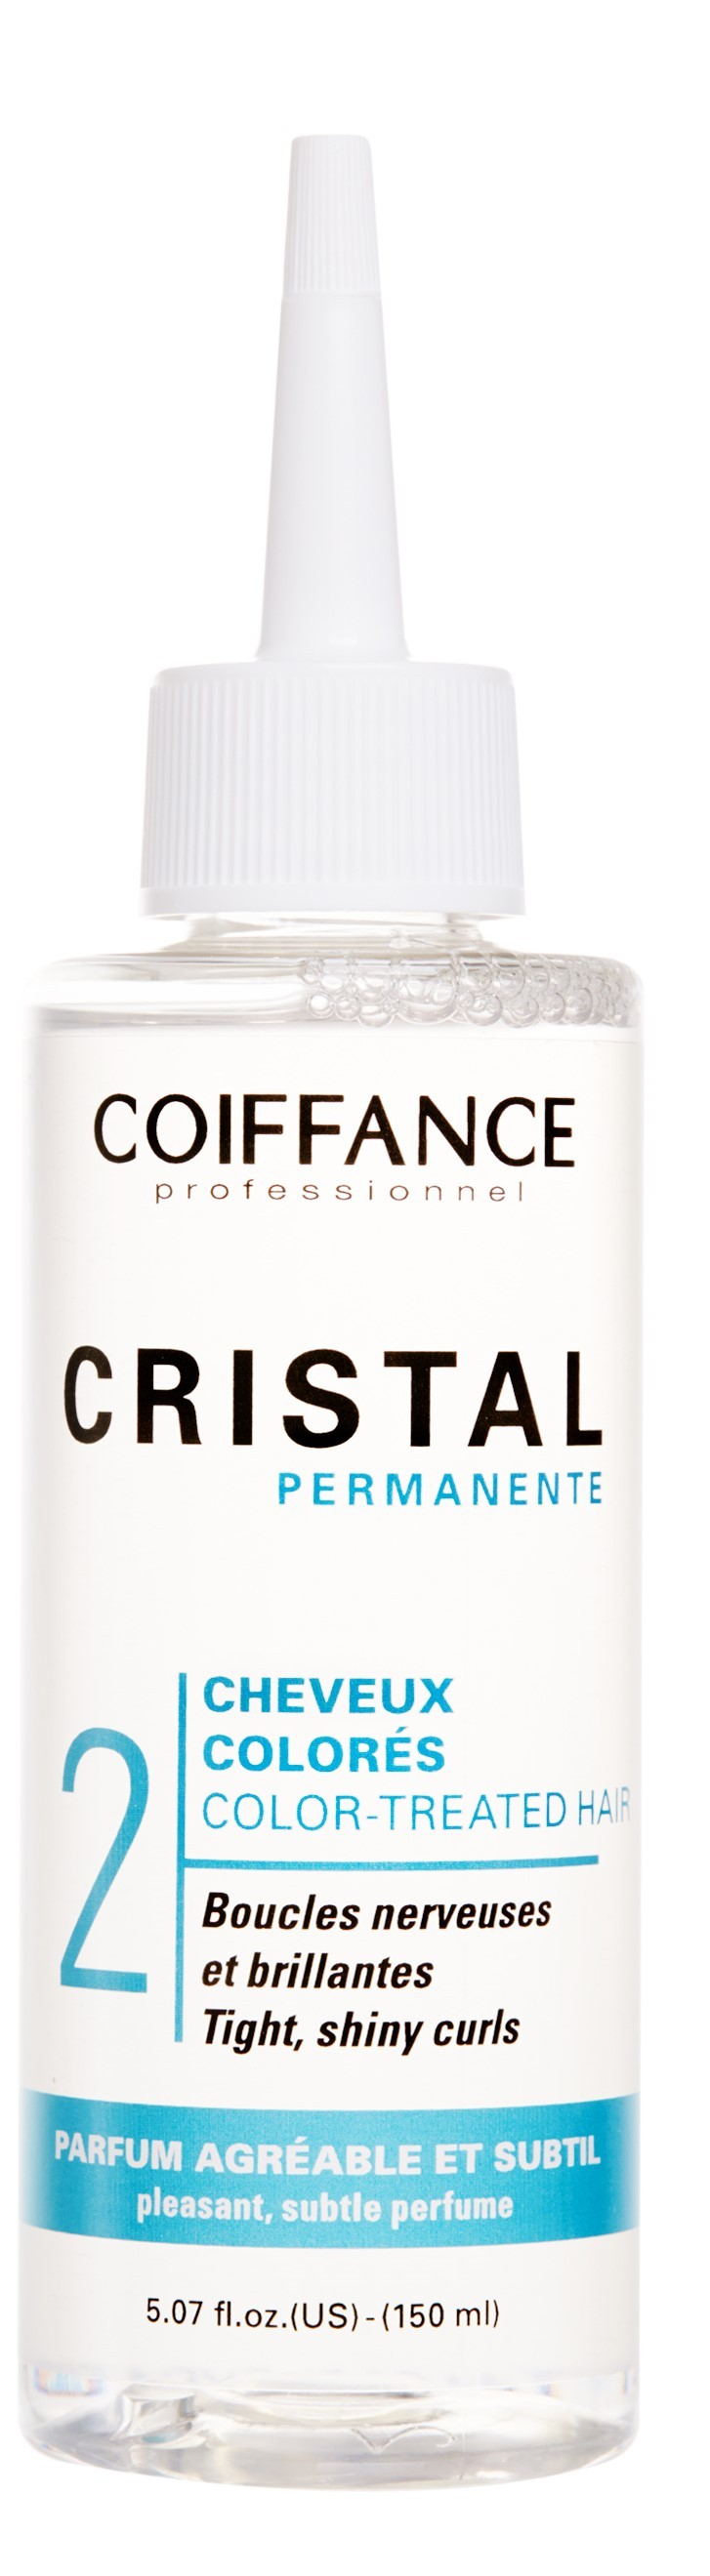 Coiffance Cristal Perm Force 2 Color Treated Hair 150ml Gf